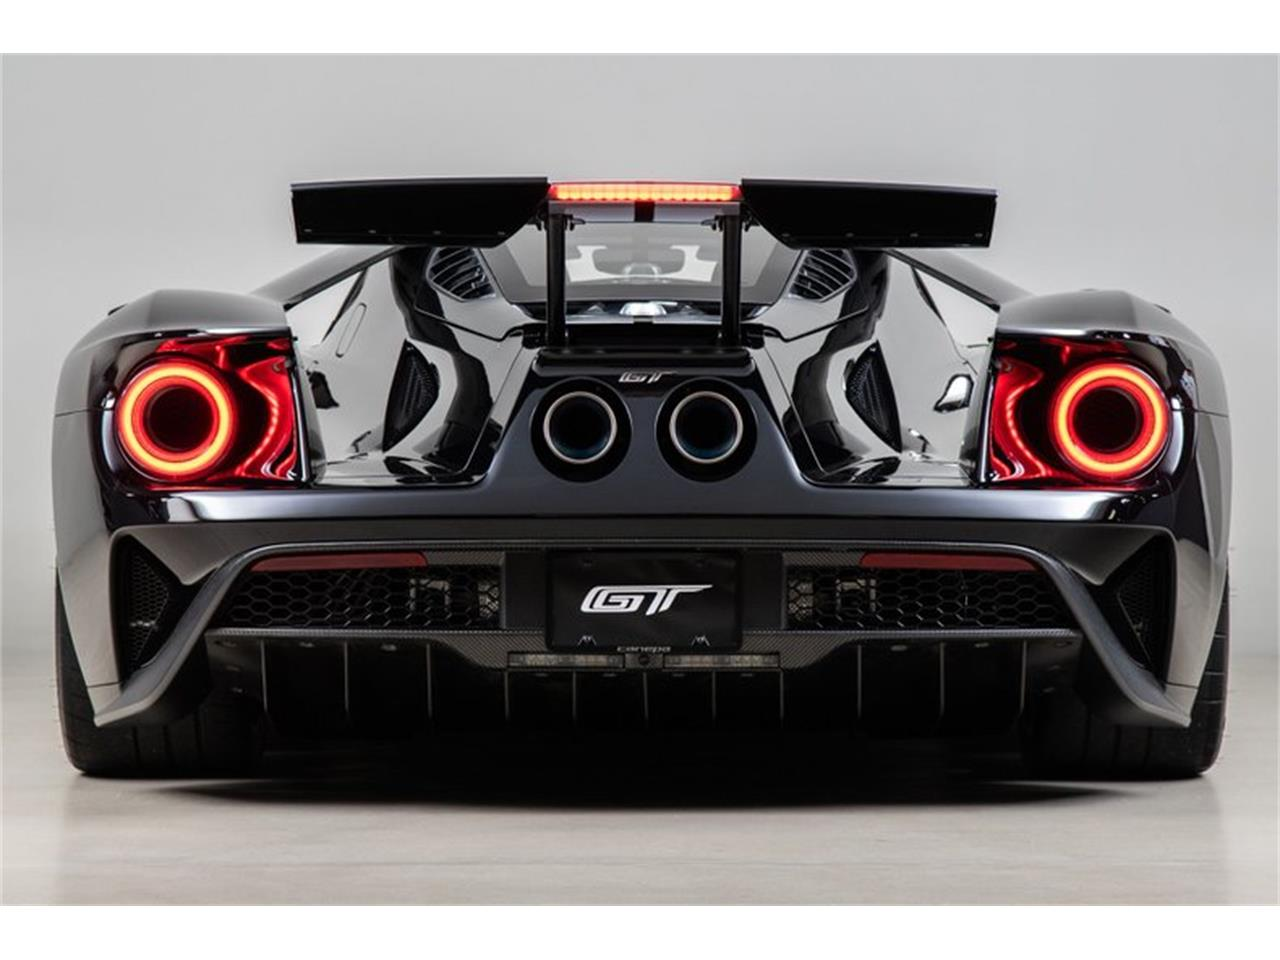 2017 Ford GT (CC-1293626) for sale in Scotts Valley, California